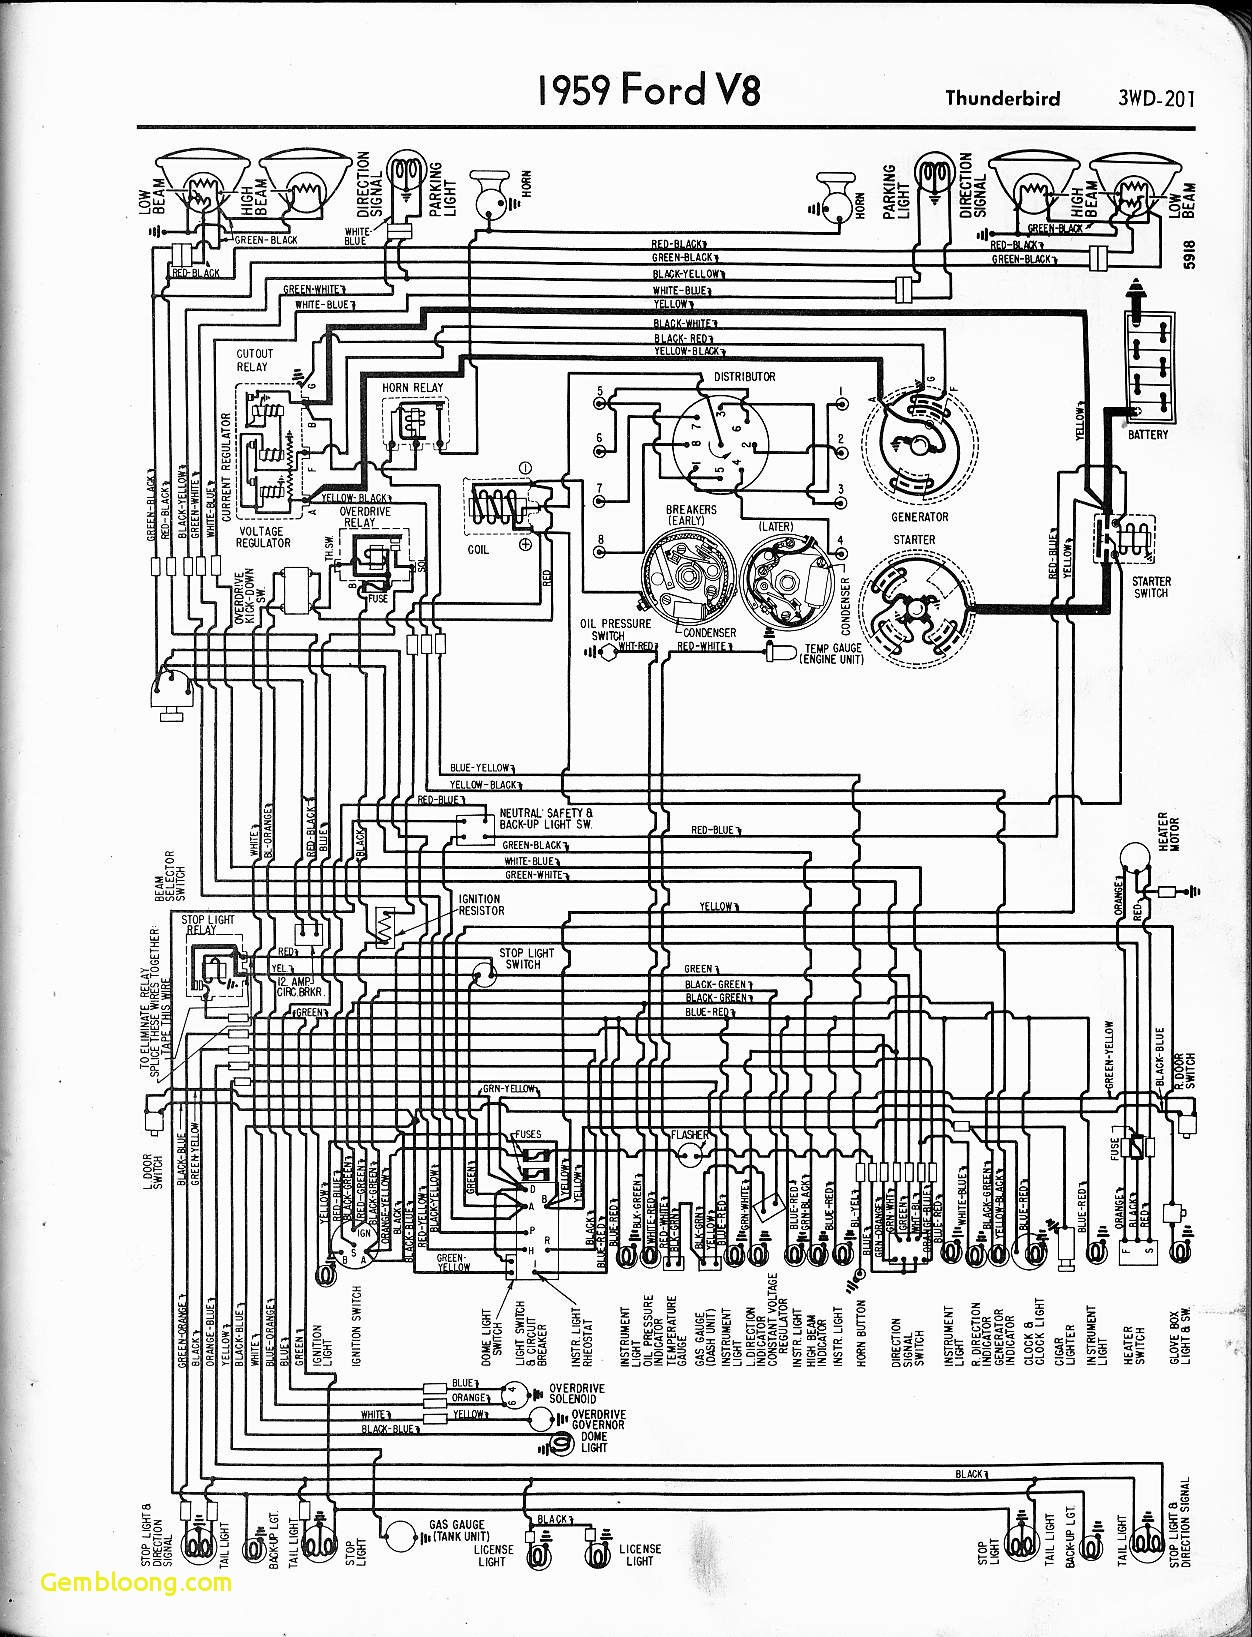 2006 F150 Engine Diagram Download ford Trucks Wiring Diagrams ford F150 Wiring Diagrams Best Of 2006 F150 Engine Diagram Download ford Trucks Wiring Diagrams ford F150 Wiring Diagrams Best